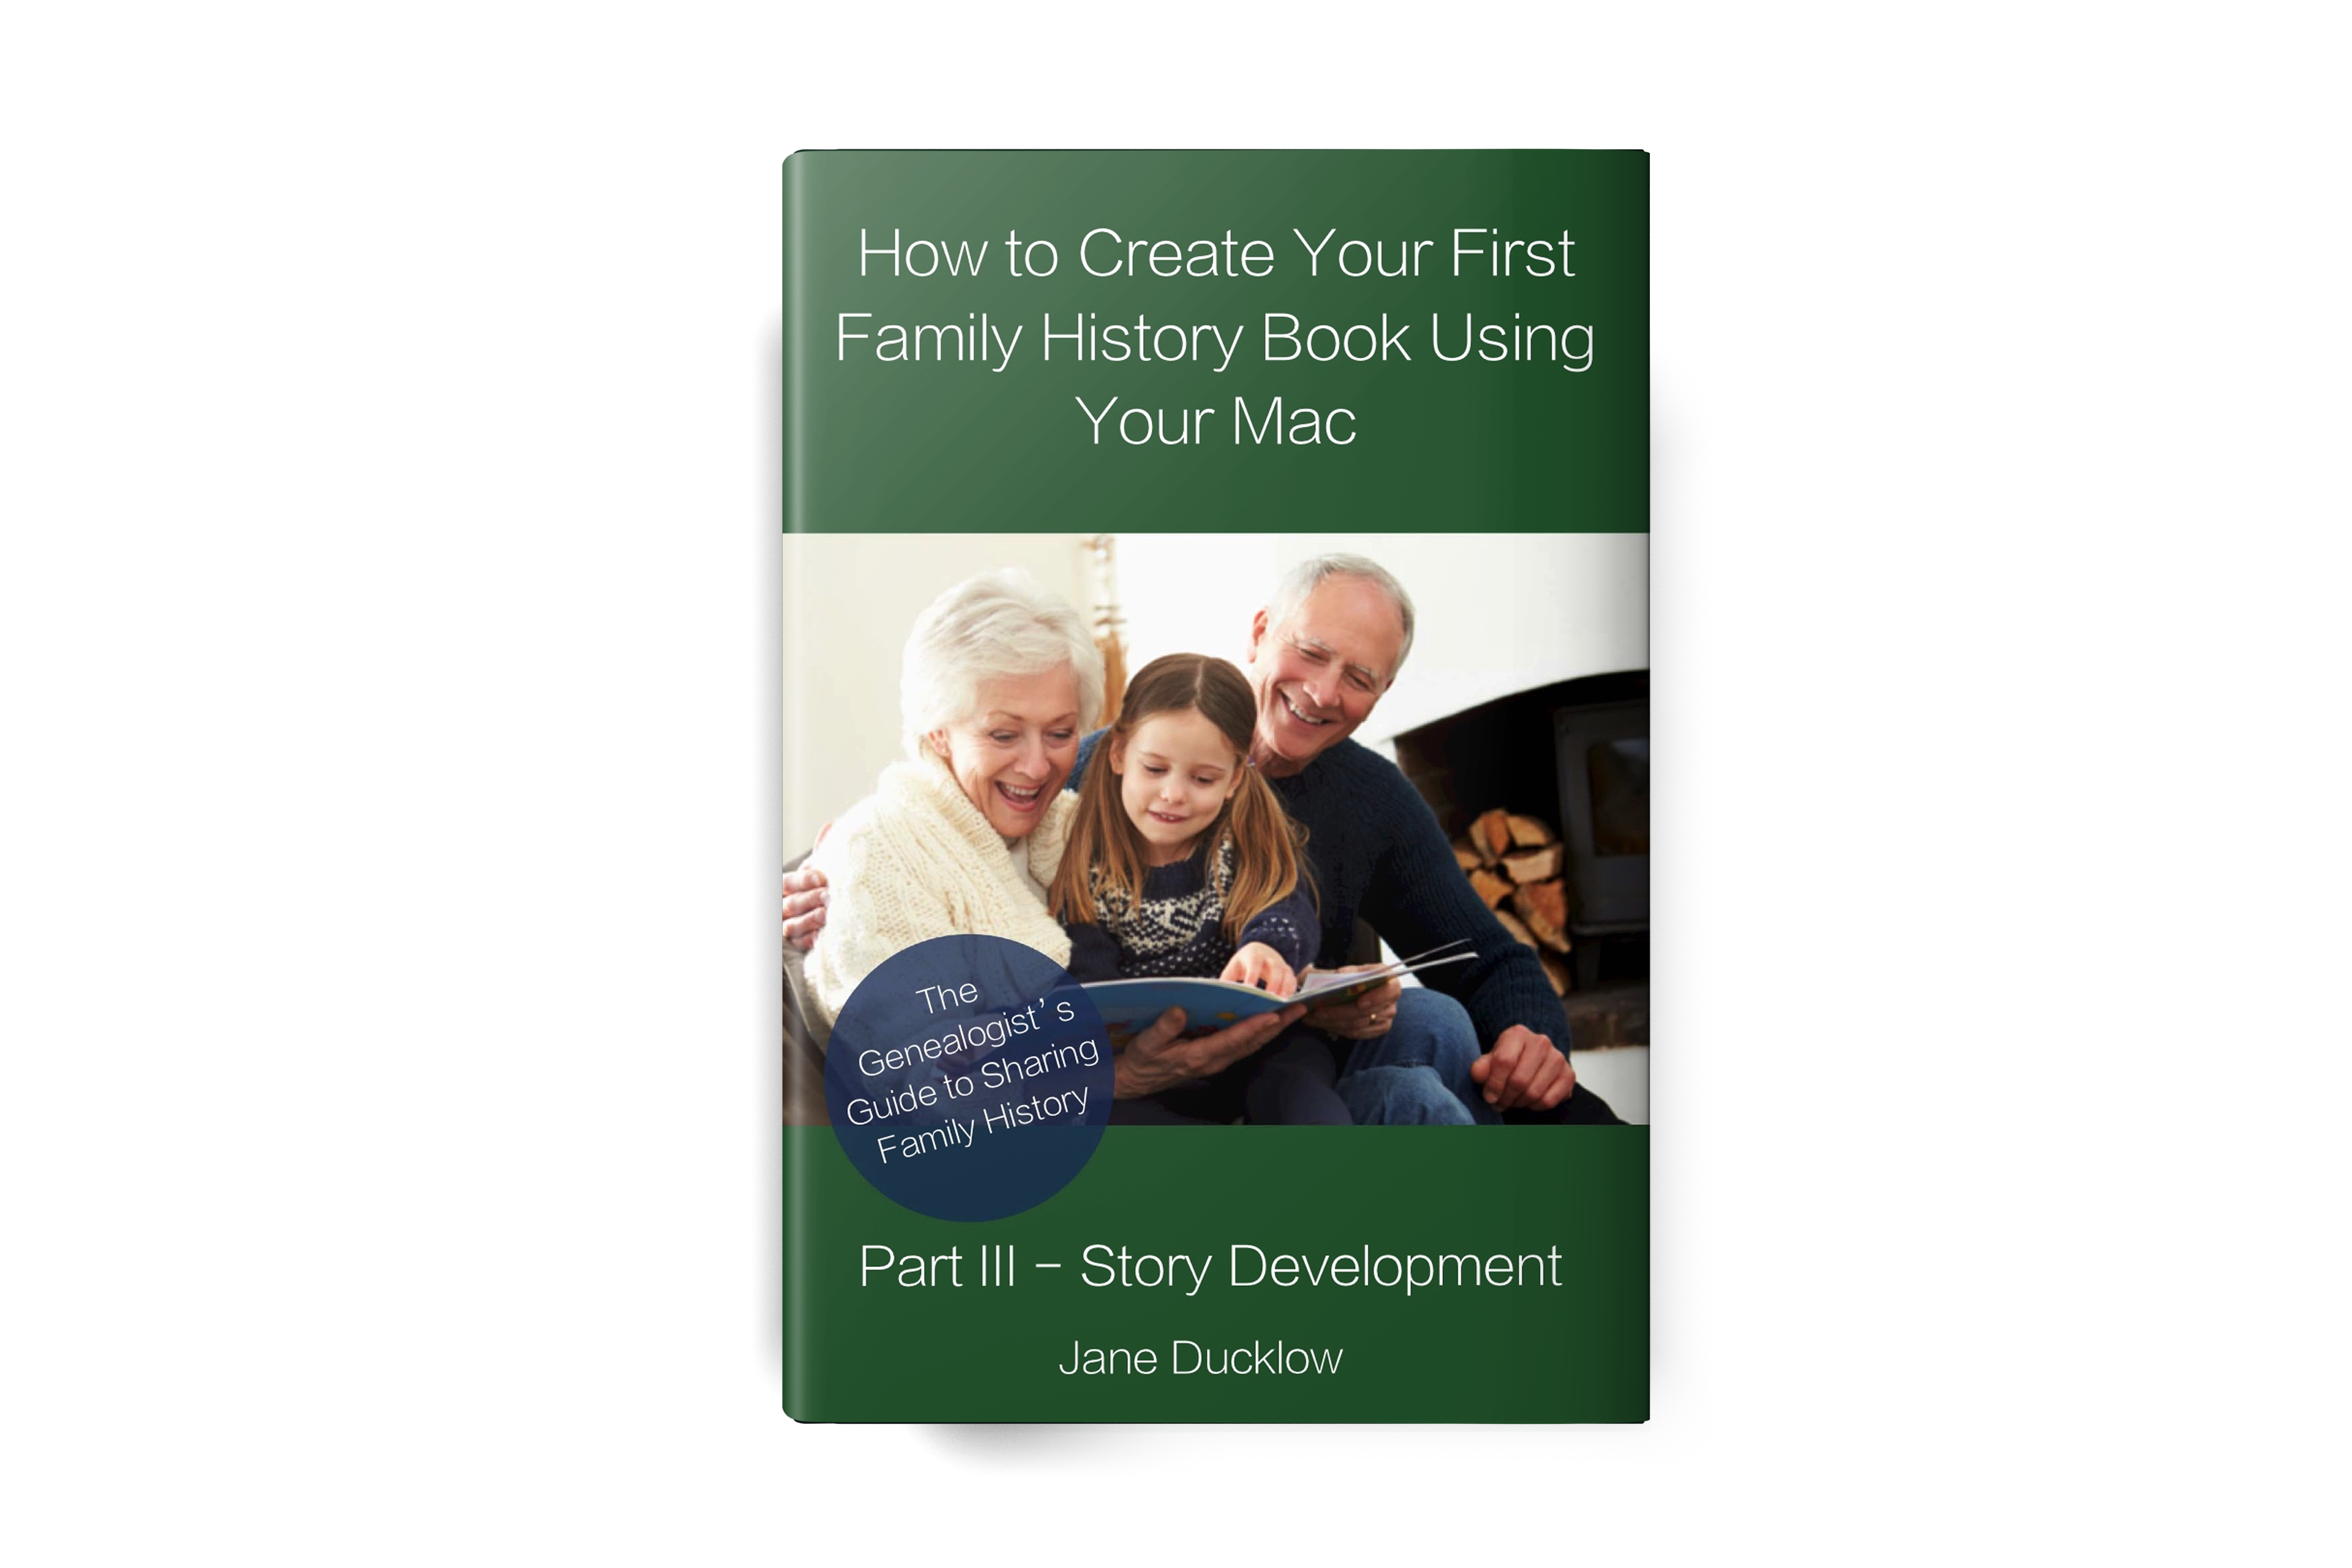 how to create your first family history book using your mac